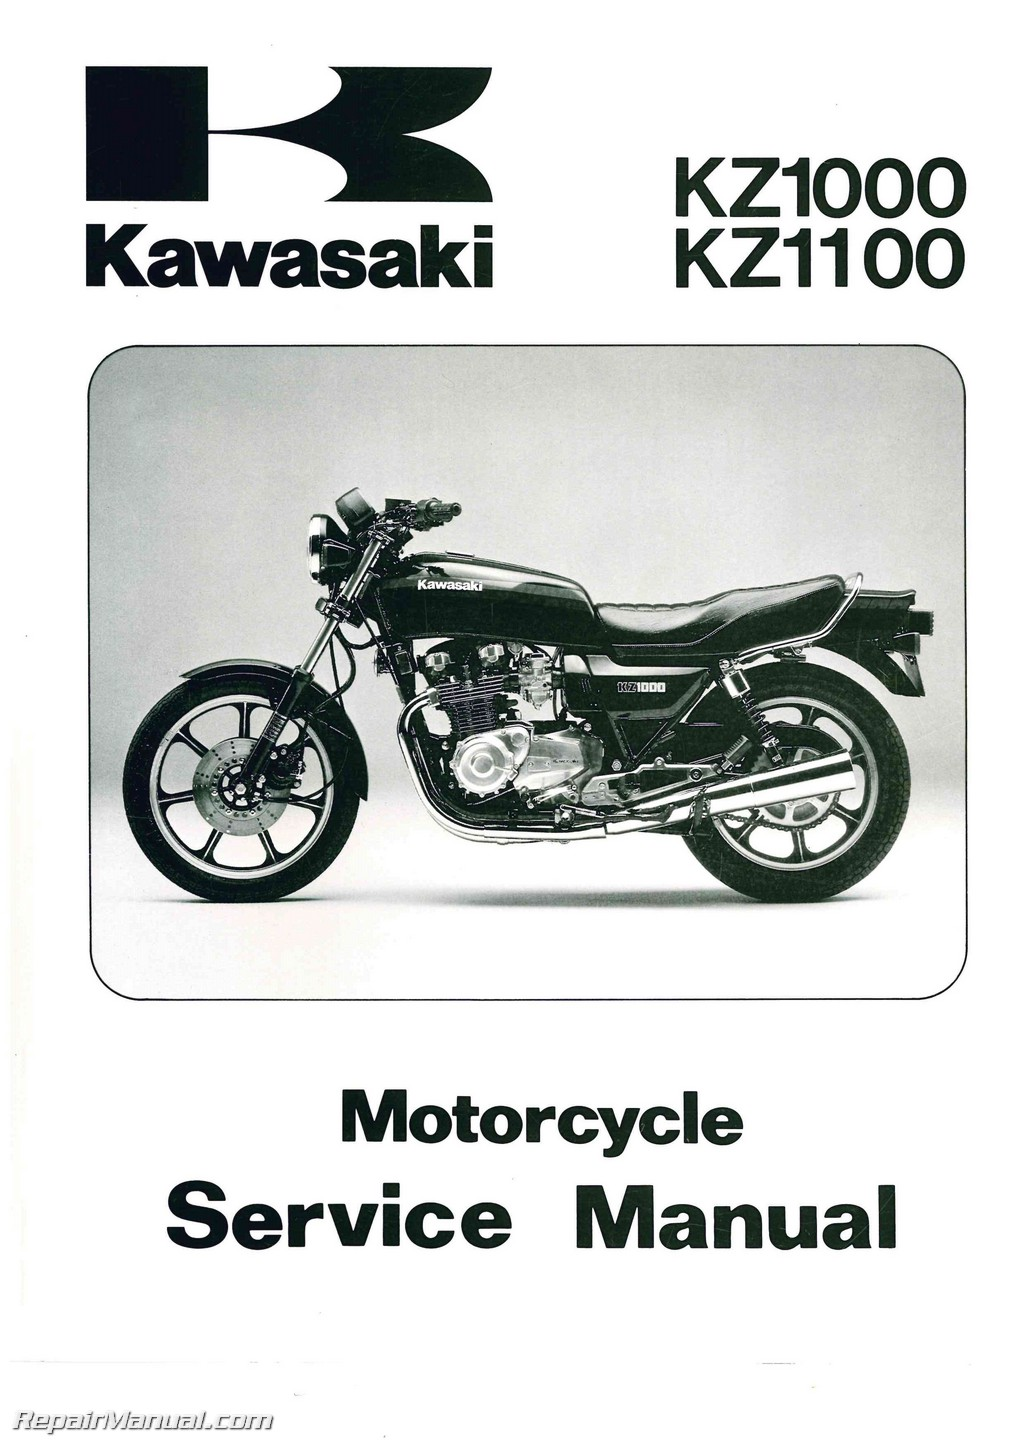 Kawasaki Z1000 Service Manual Auto Electrical Wiring Diagram 2006 Parts Schematic